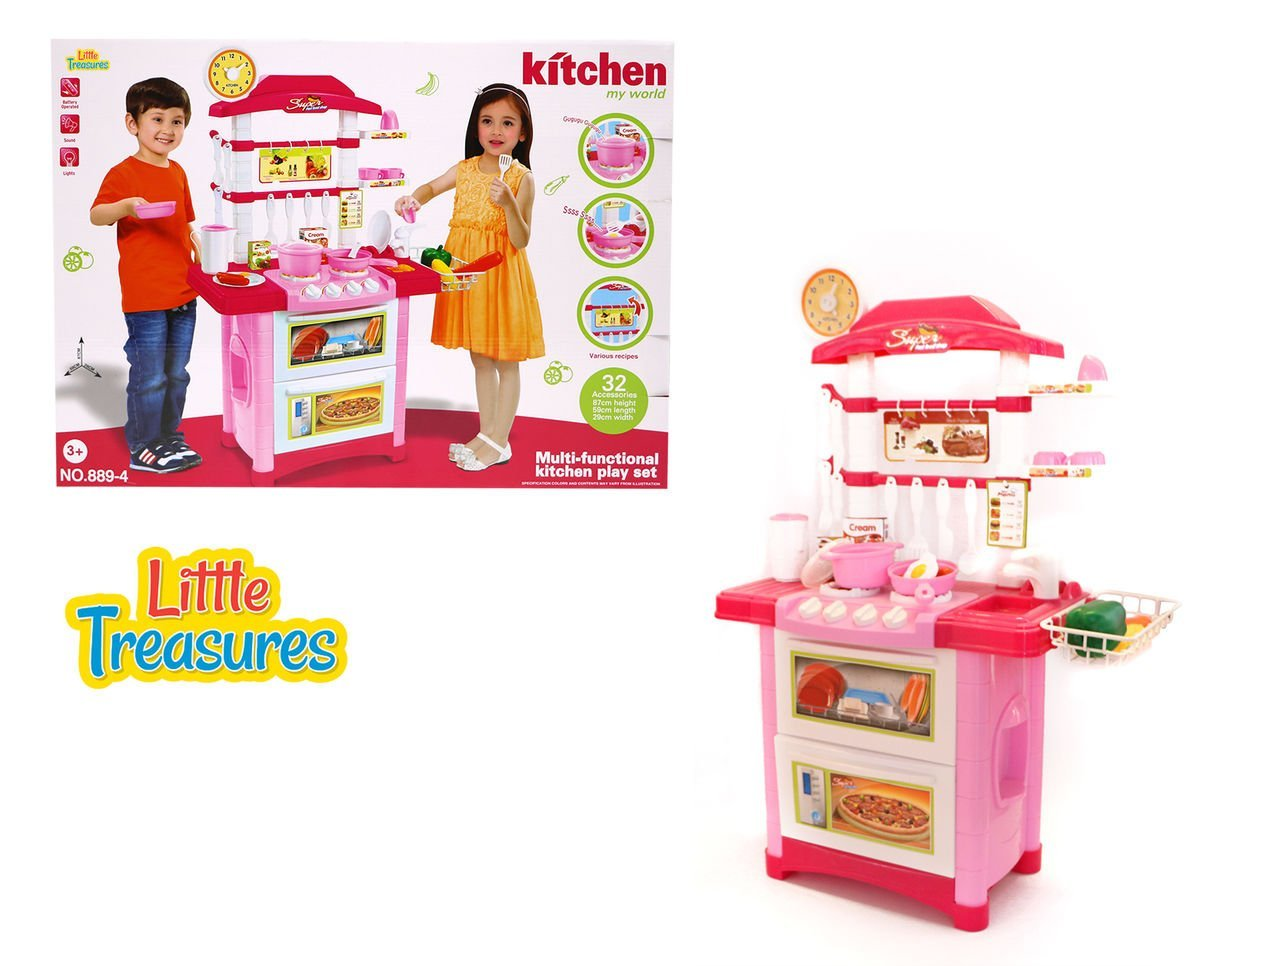 Buy Little Treasures Kitchen toy set for kids 3+ battery operated ...